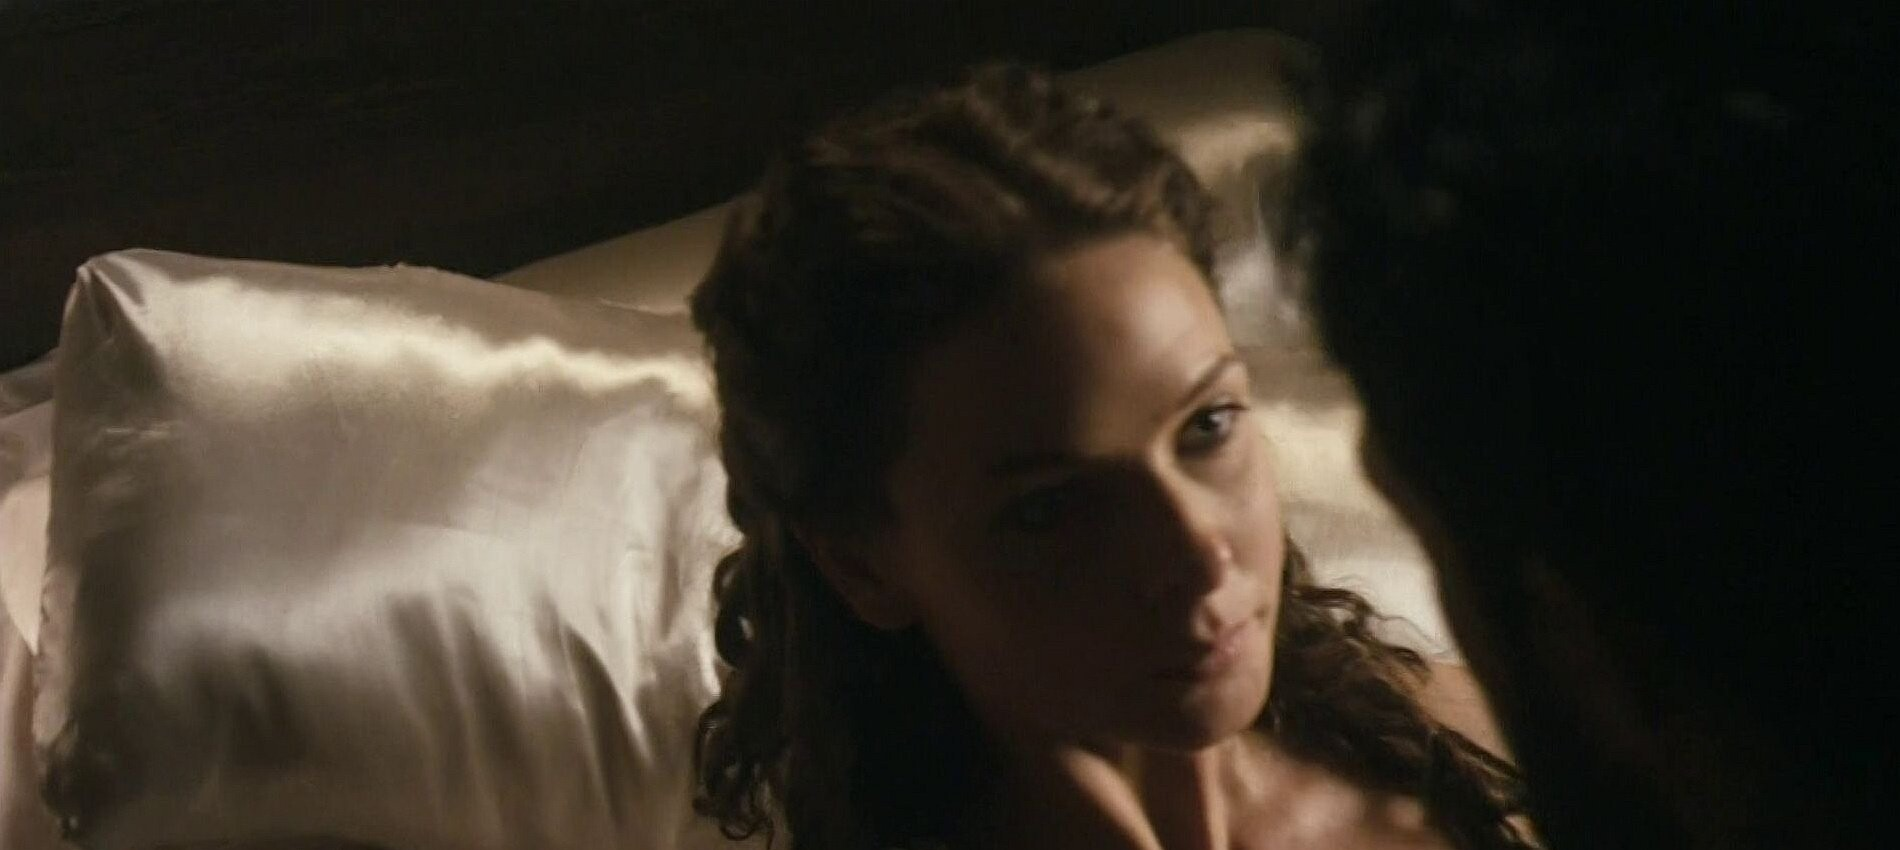 Rebecca Ferguson in The Red Tent 2014 fappenings.com 1